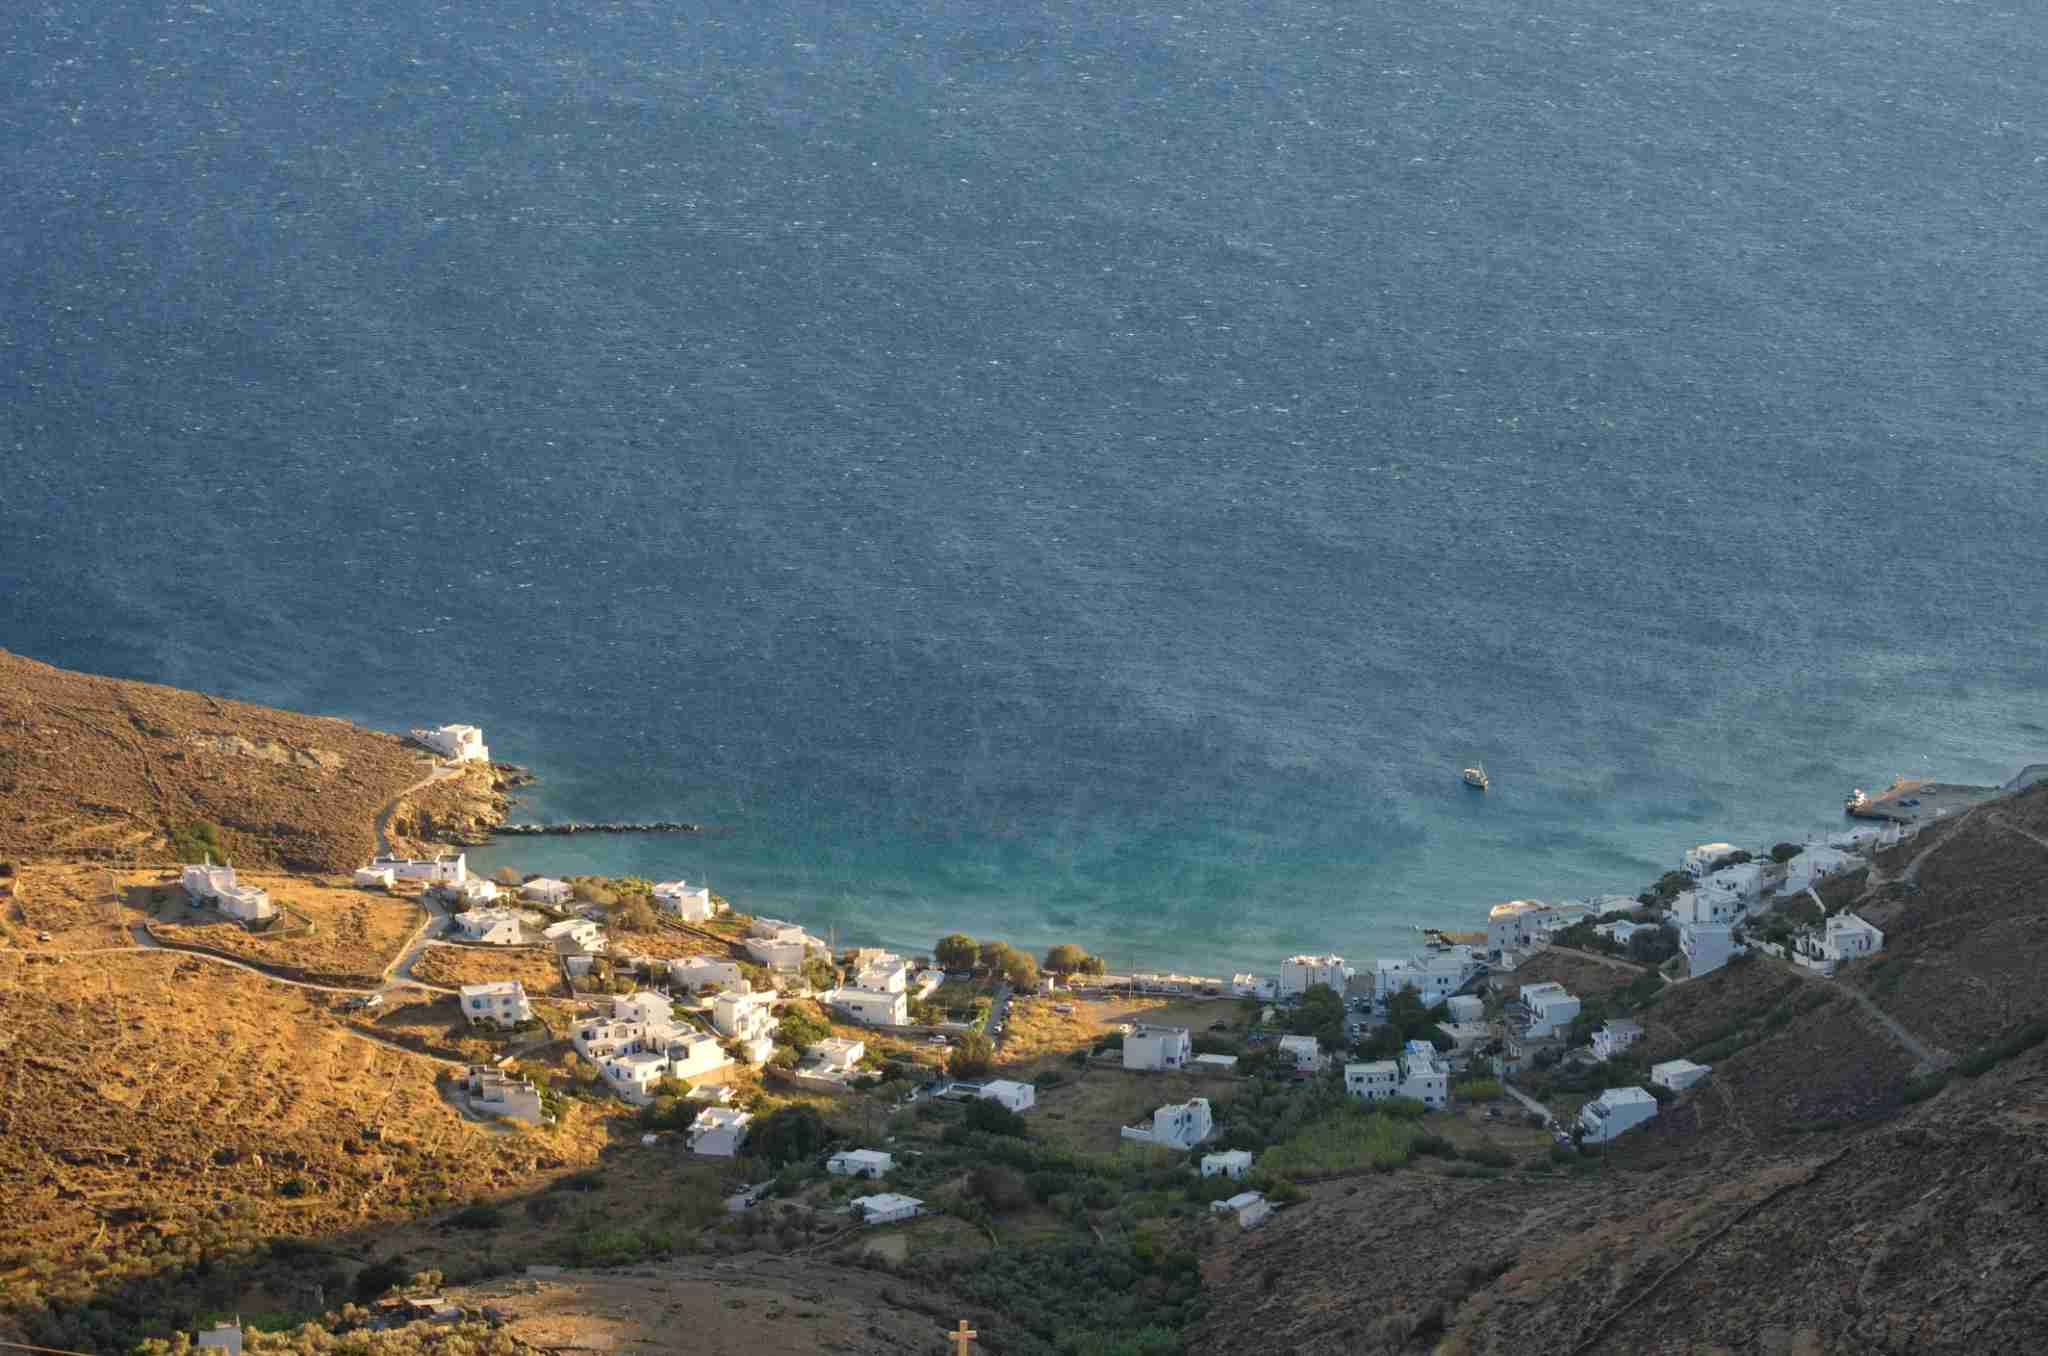 Tinos, Greece. (Photo courtesy of Ioannis Tsotras/Getty)